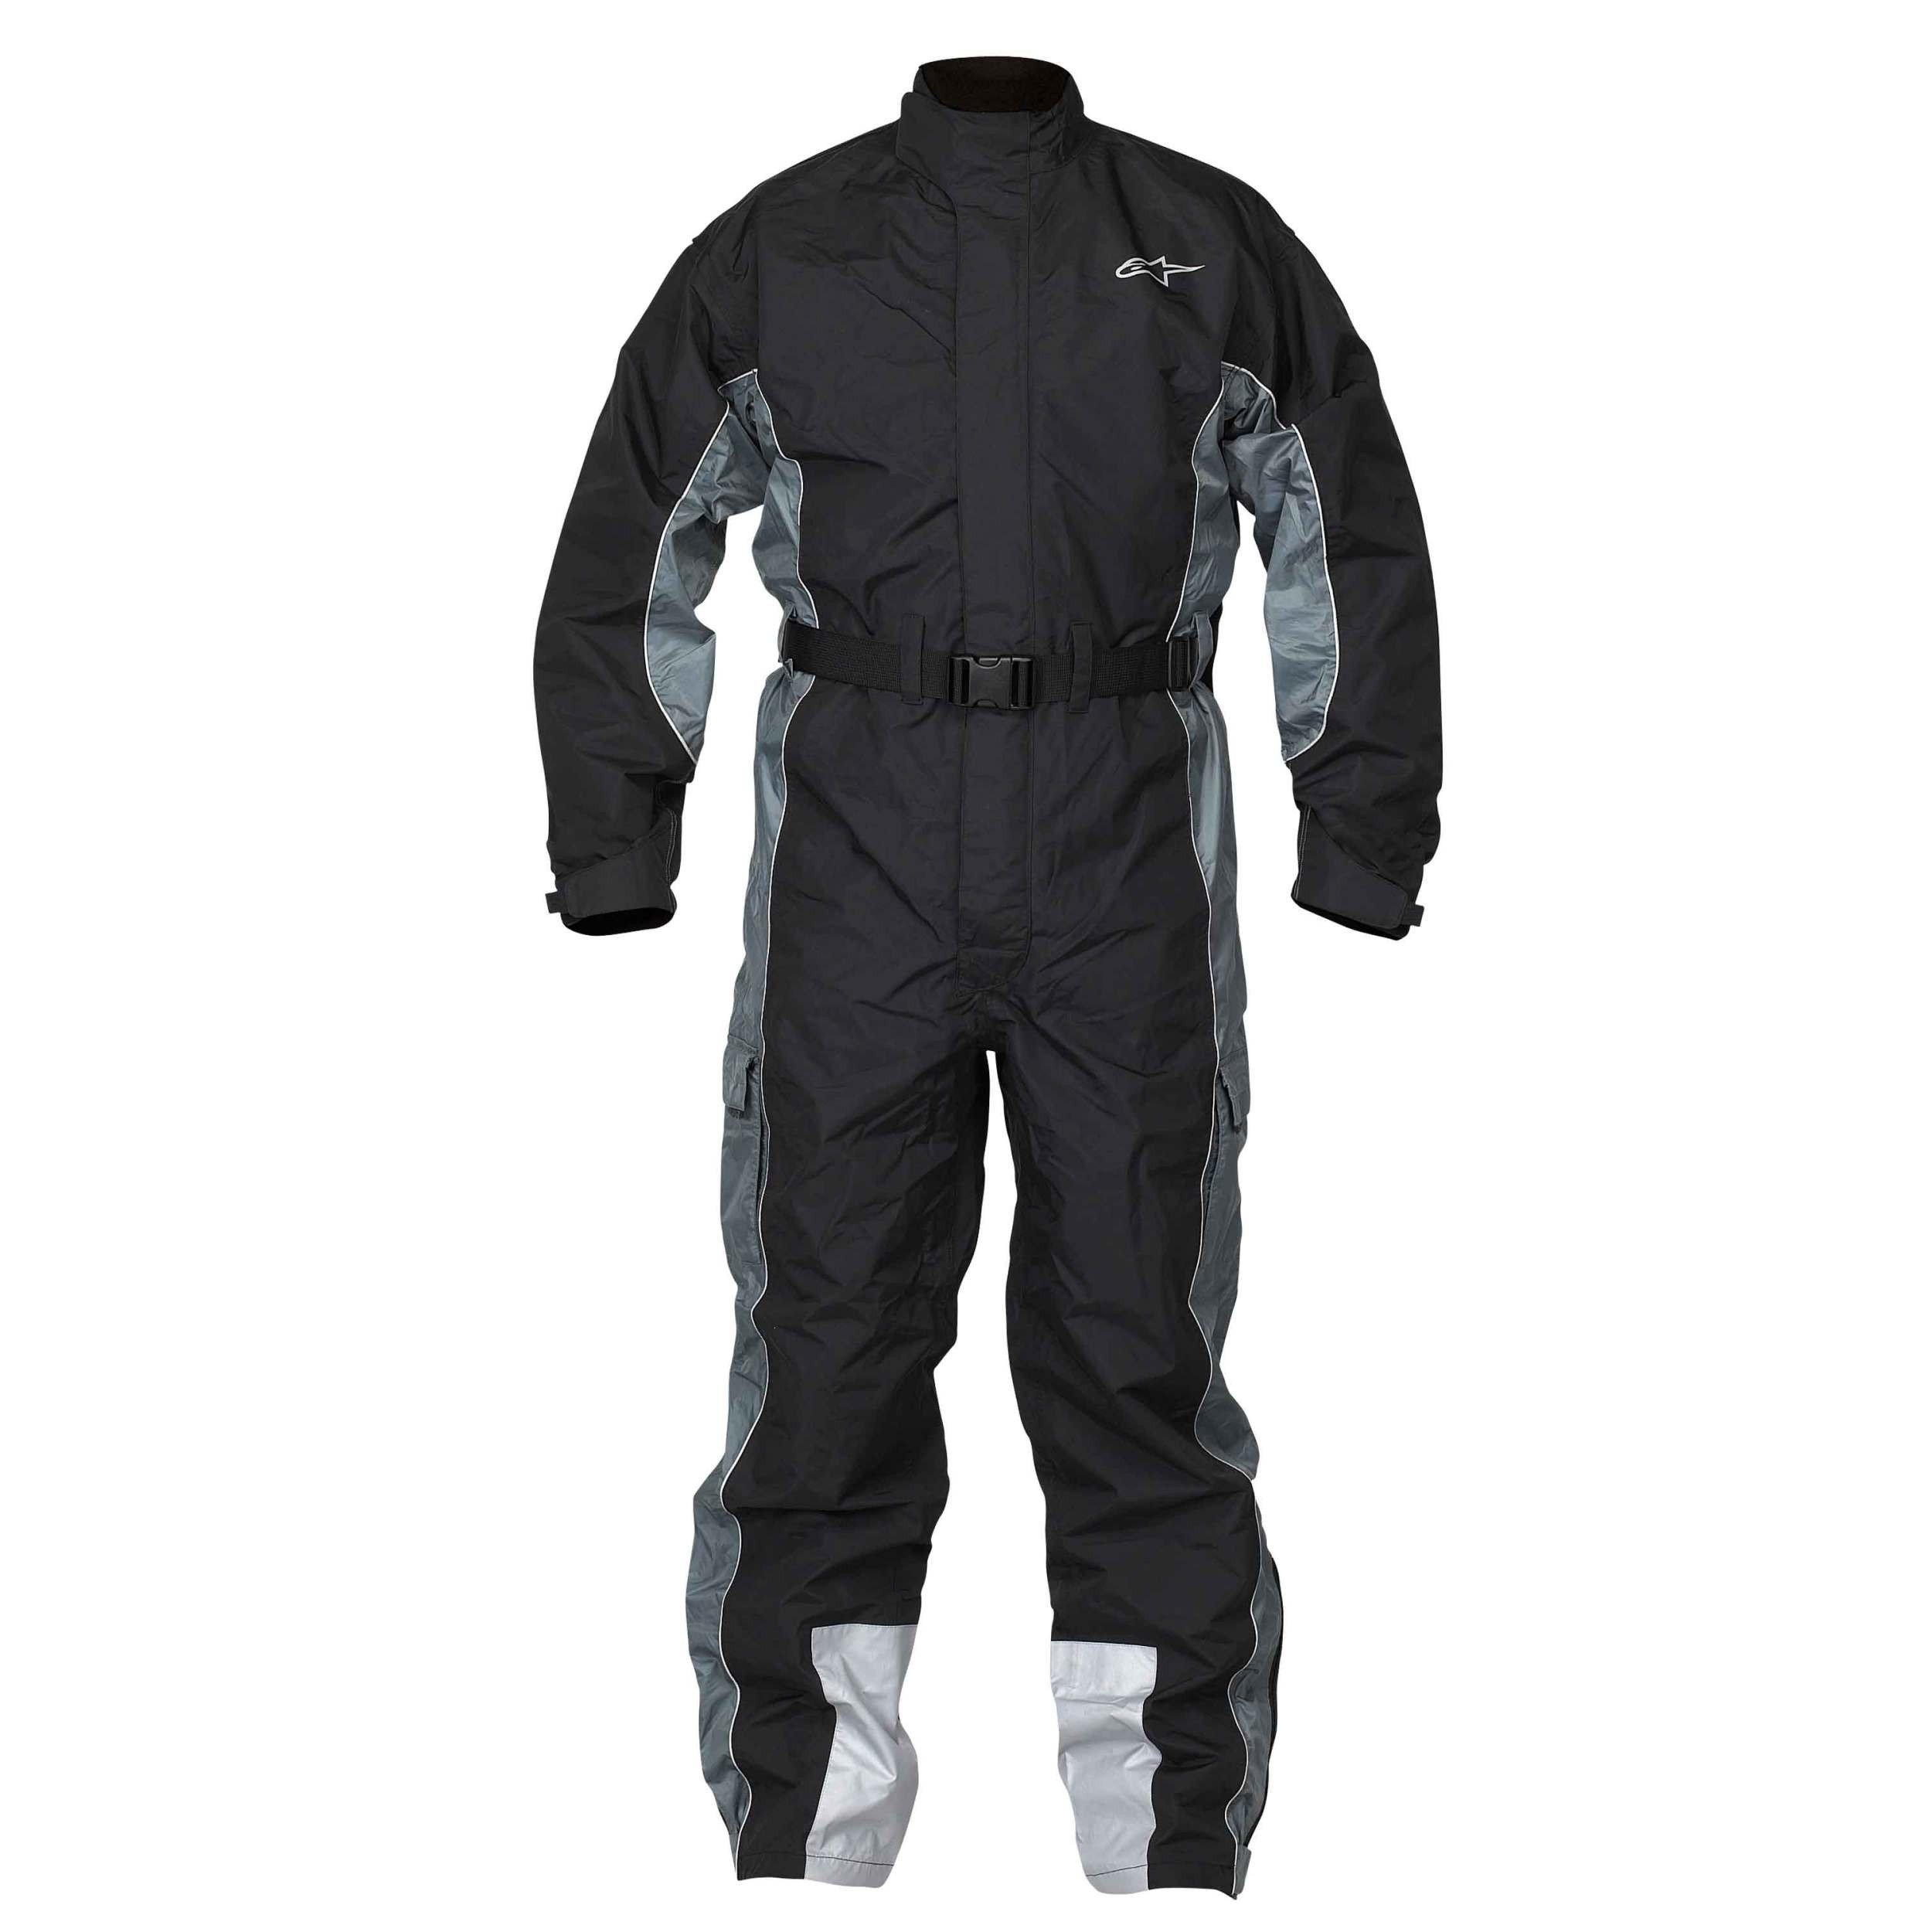 Alpinestars El Nino Rain Suit 1PC Black S